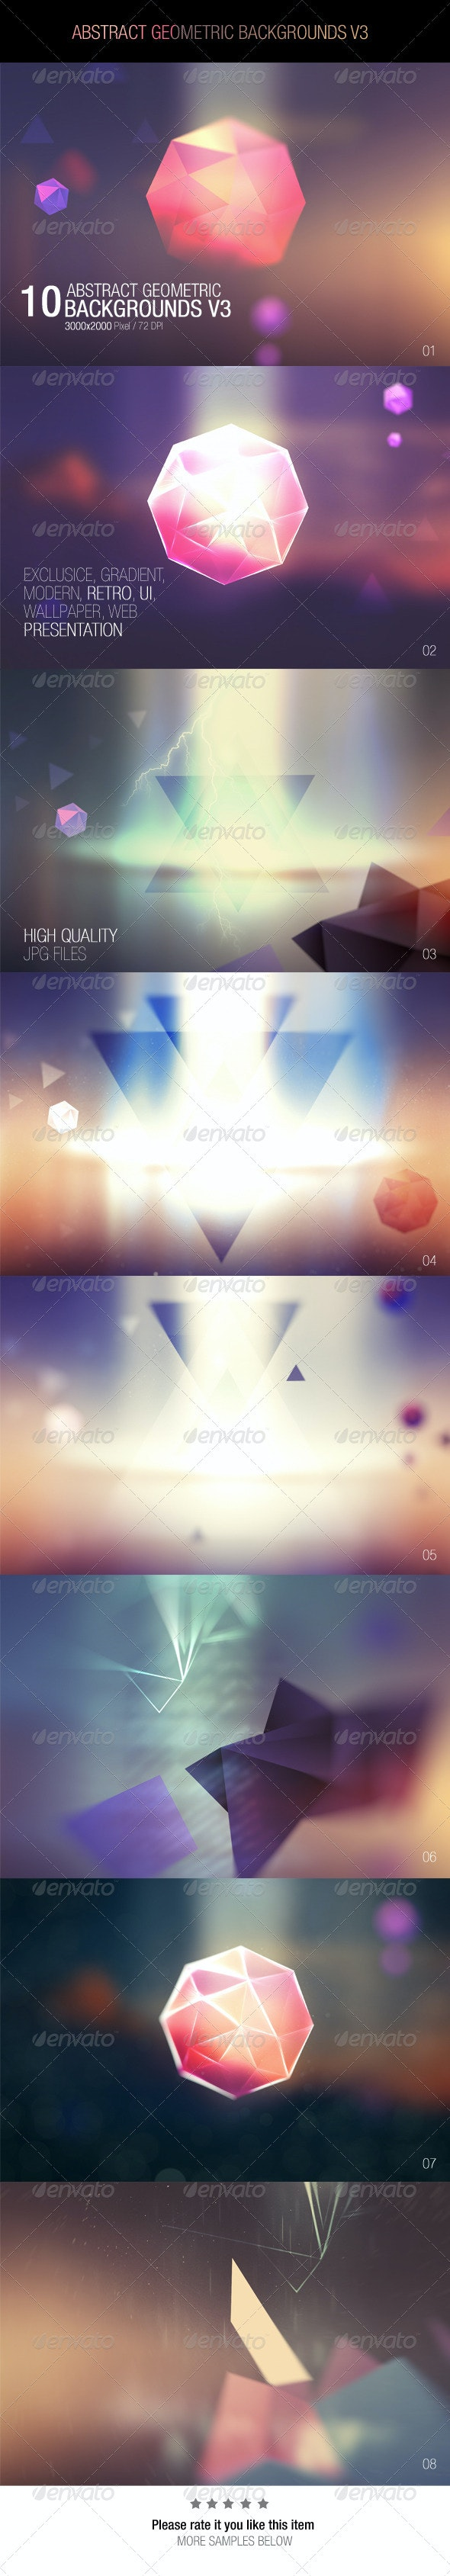 Abstract Geometric Backgrounds V3 - Abstract Backgrounds